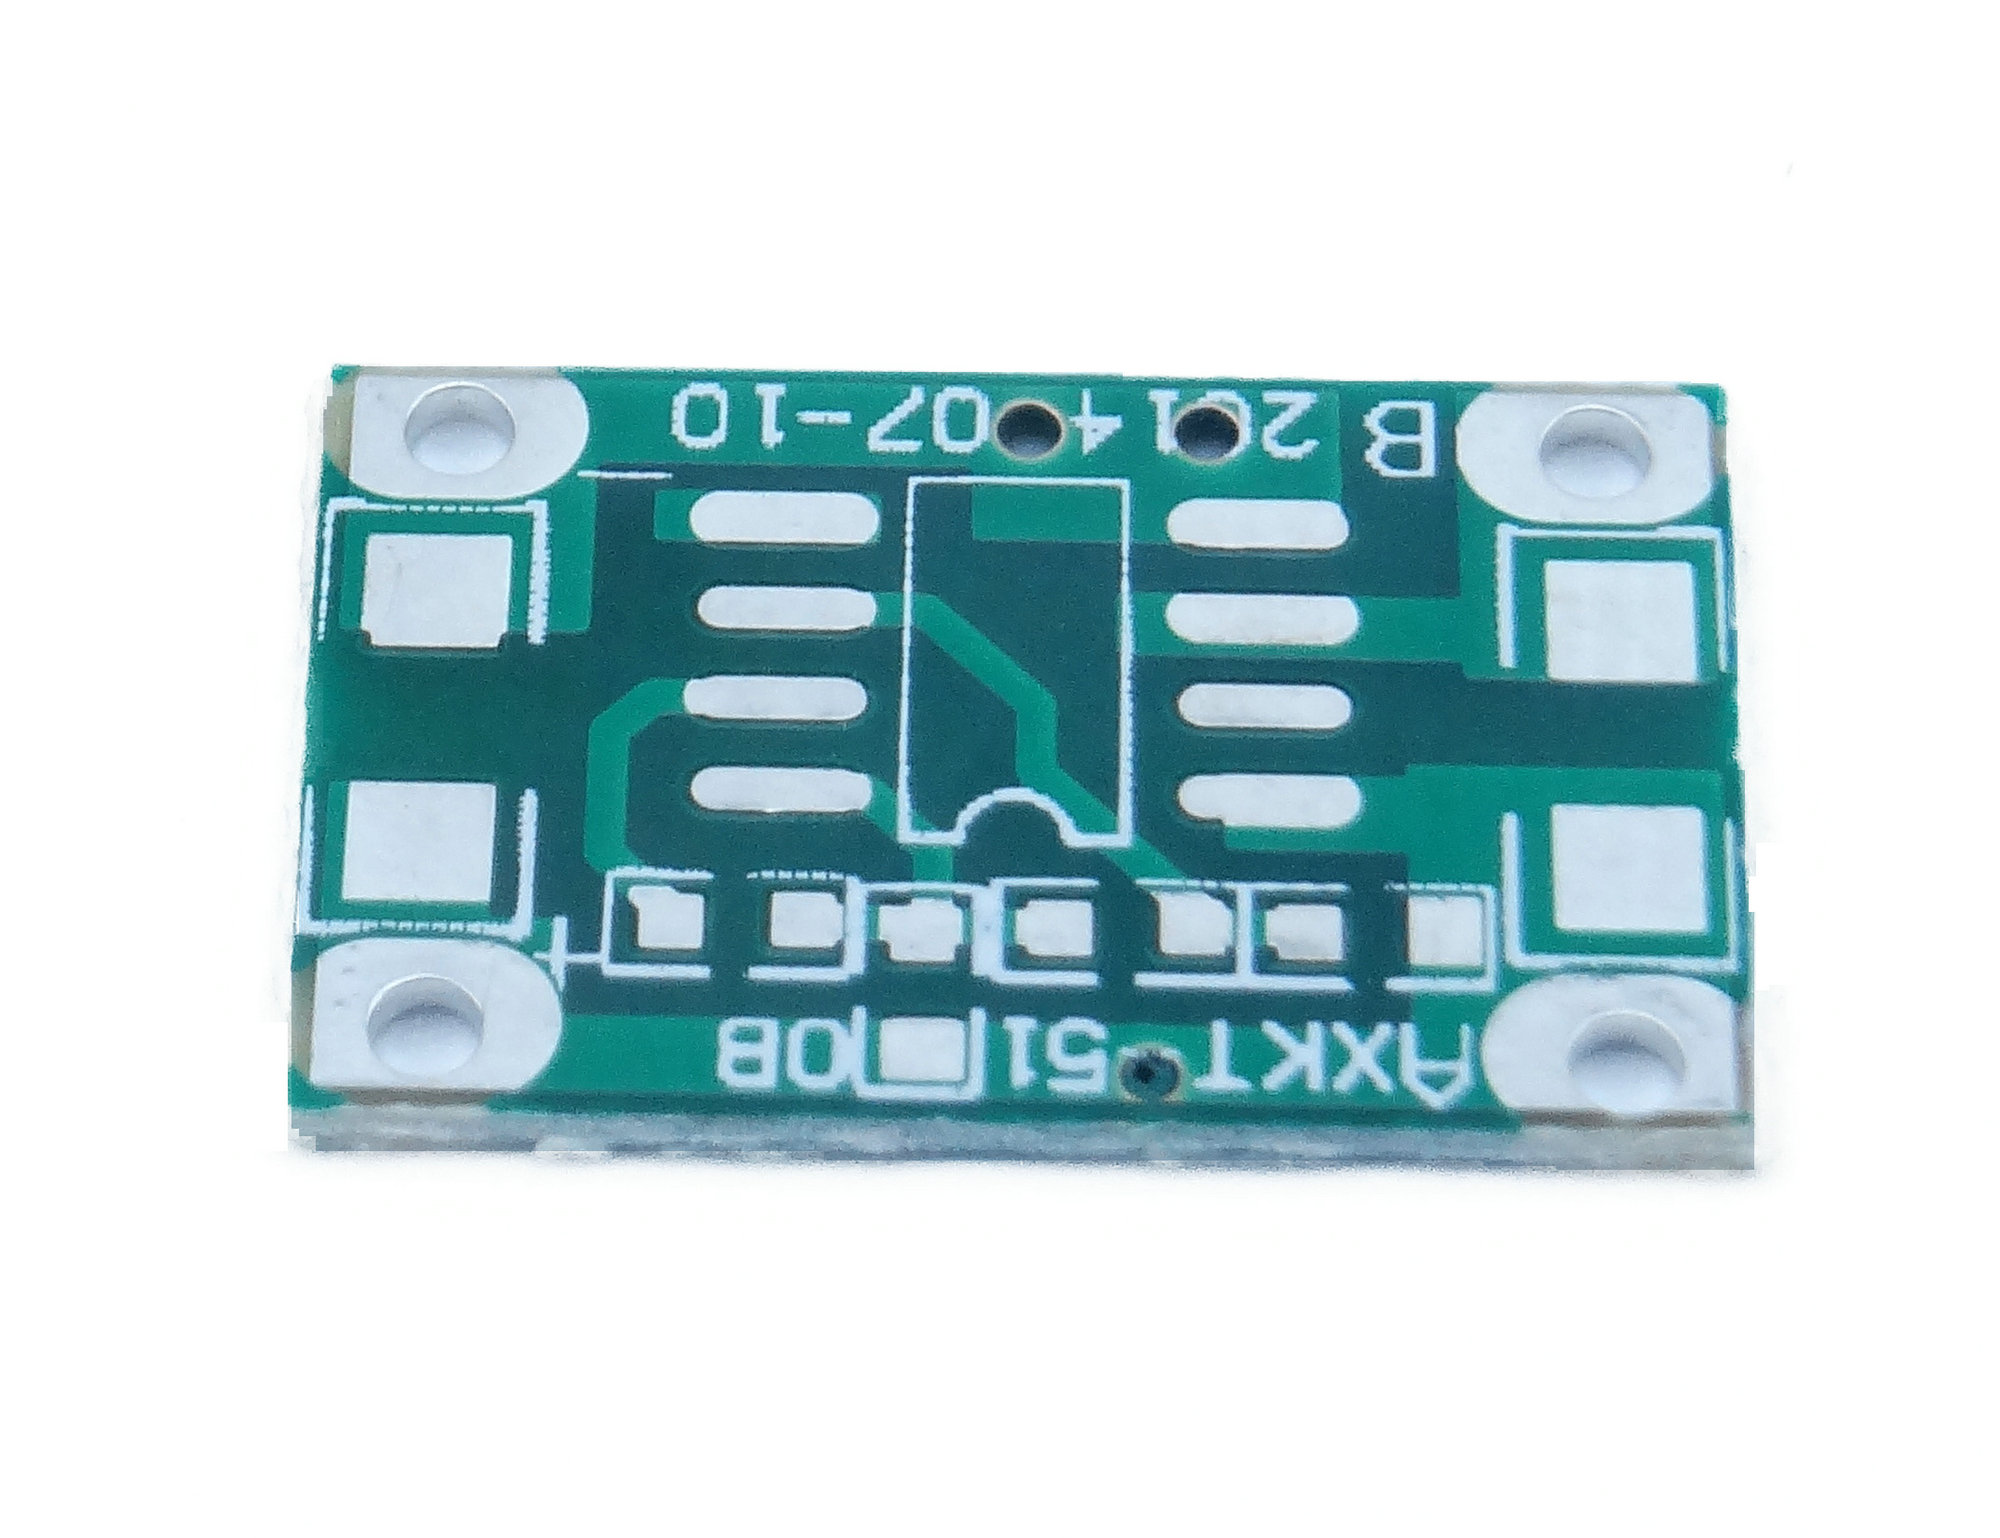 hight resolution of 510 single chip series wireless charging power supply module circuit diagram pcb circuit board test board in instrument parts accessories from tools on